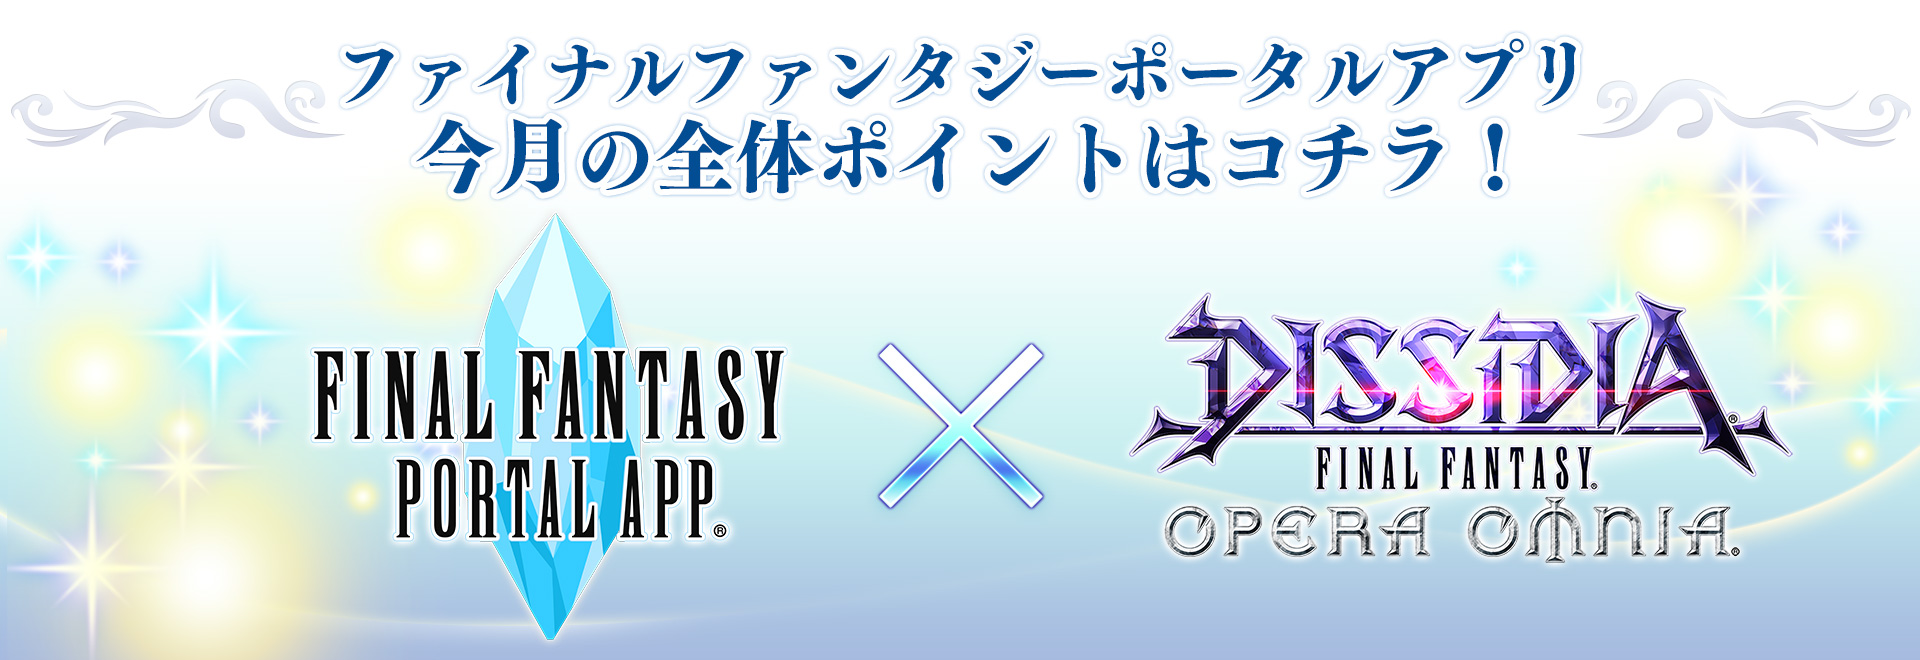 Point dffoo